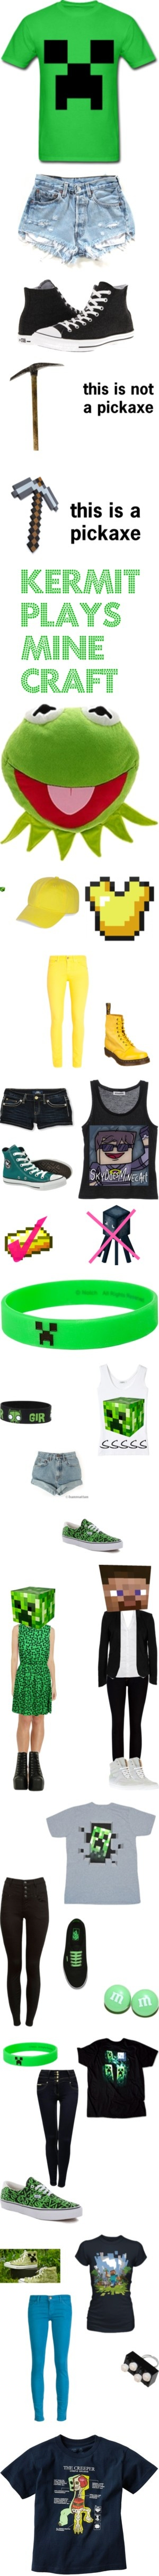 """""""minecraft33"""" by skydoesminecraft ❤ liked on Polyvore"""